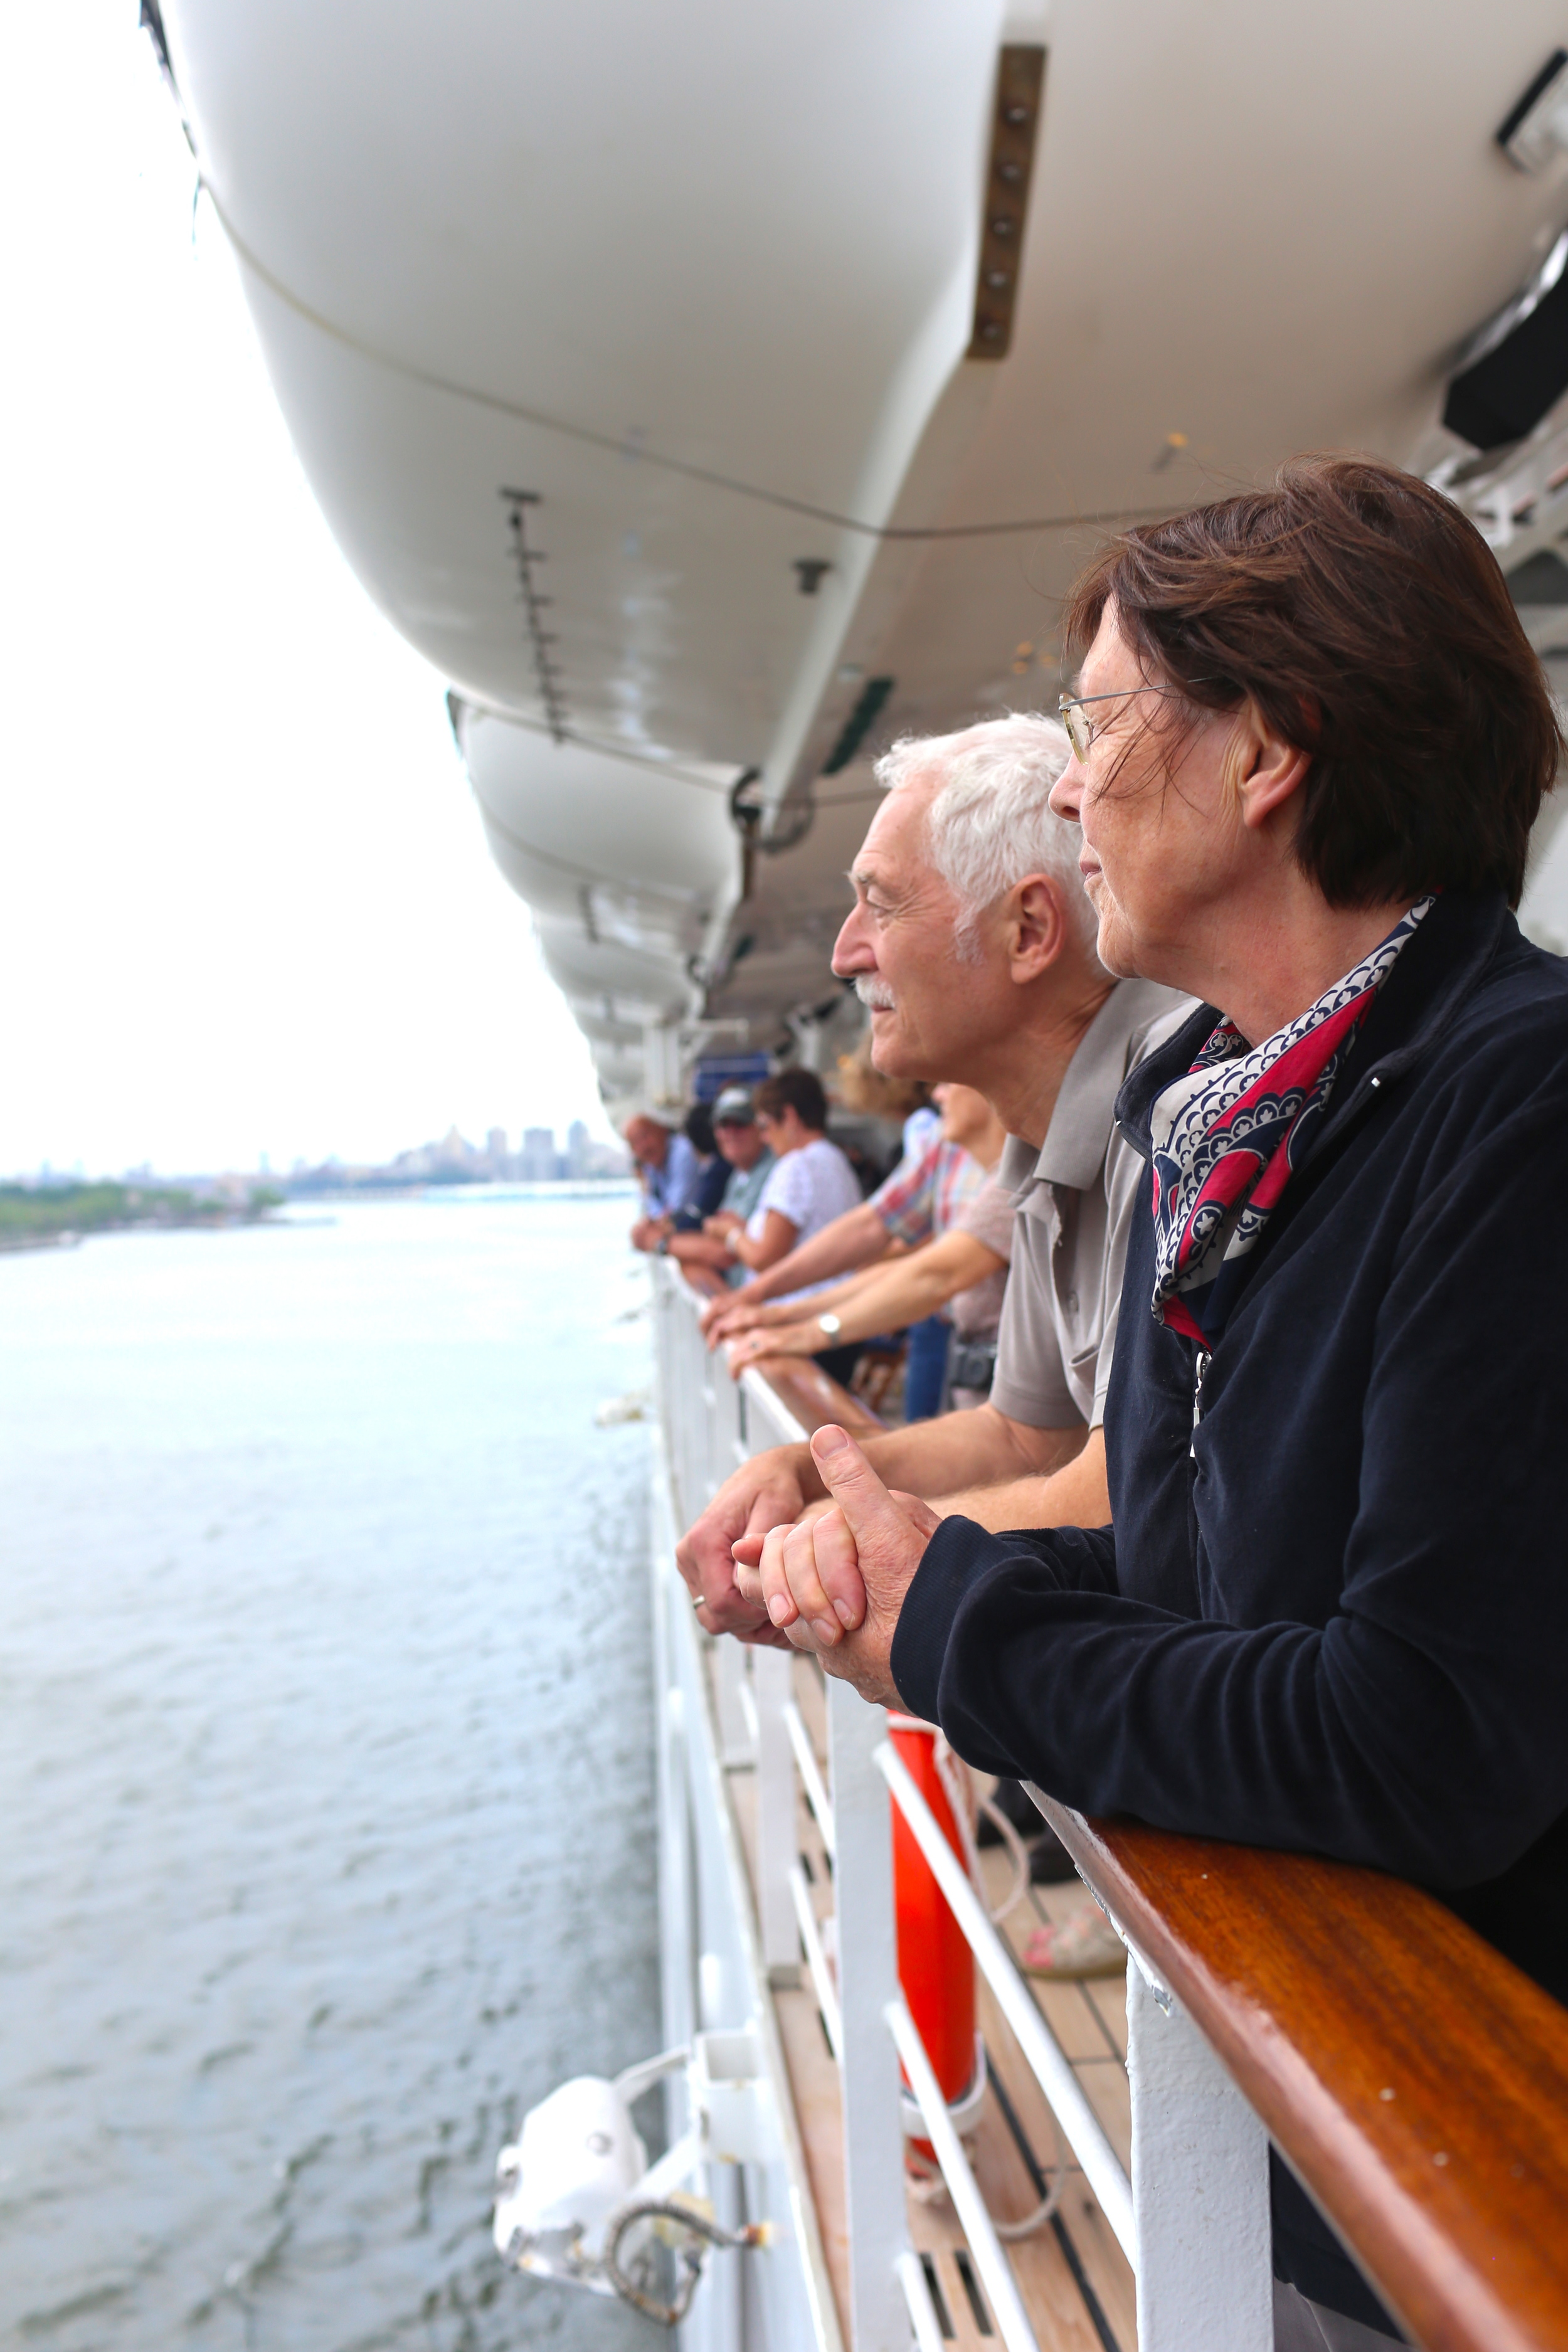 I began to understand how family dynamic is important for development as I watched my demeanor soften around the individuals on the ship. Feeling surrounded by people who I would consider my elders, a sense of humility and observation came over me like it has never been living at home. With no sense of pretense, the majority of the shipboard (who were older couples) didn't care about comparison, or competition. You can imagine the difference in energy when compared to standard city life! Certainly there was a lot of healing wisdom to gain from.